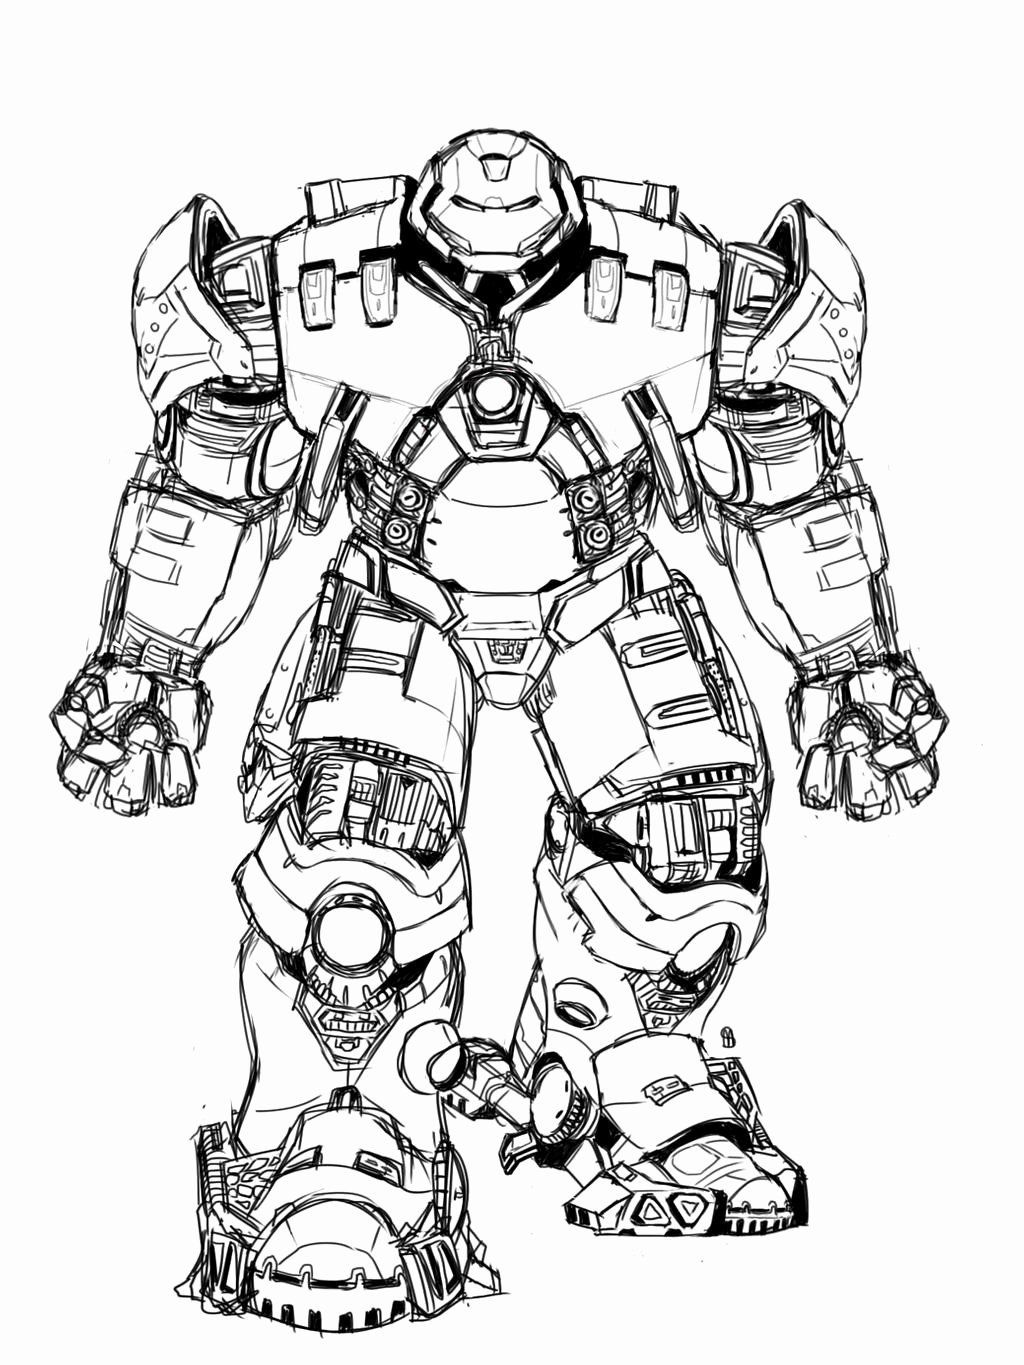 Hulk Buster Coloring Page Best Of Hulkbuster Iron Man Coloring Pages Sketch Coloring Page Iron Man Art Avengers Coloring Pages Iron Man Drawing